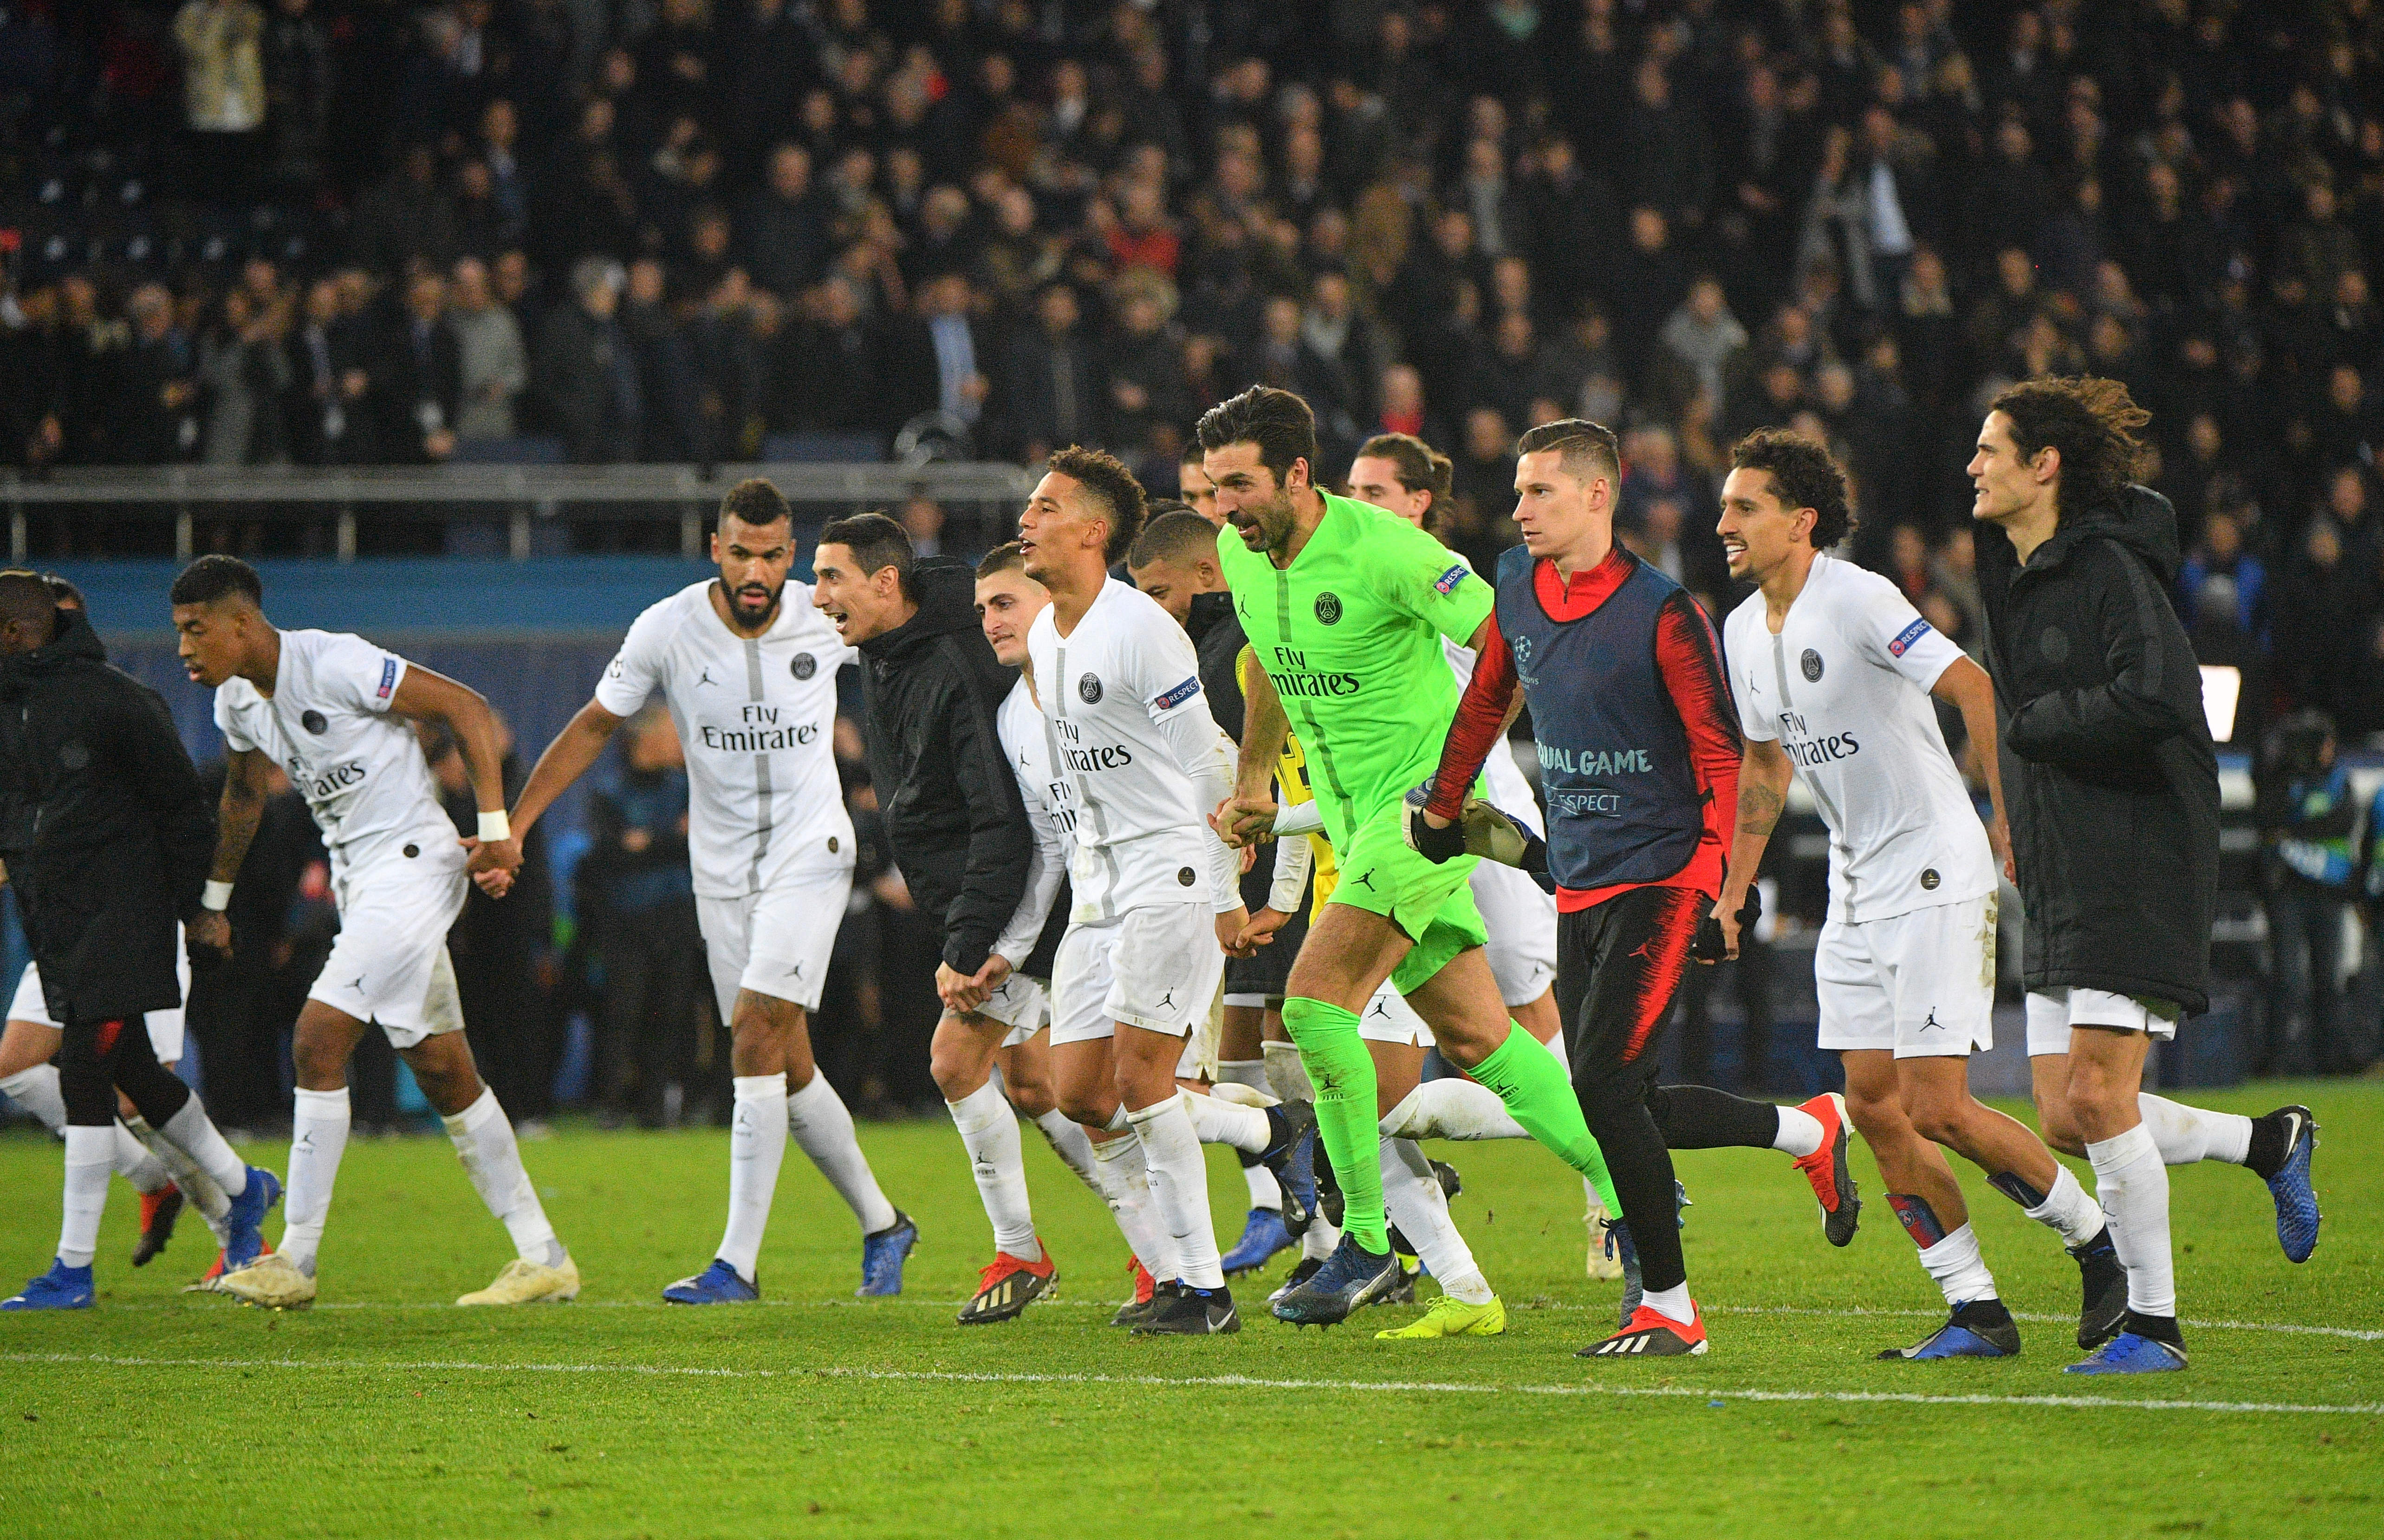 PSG players celebrate the win over Liverpool. Image PA Images